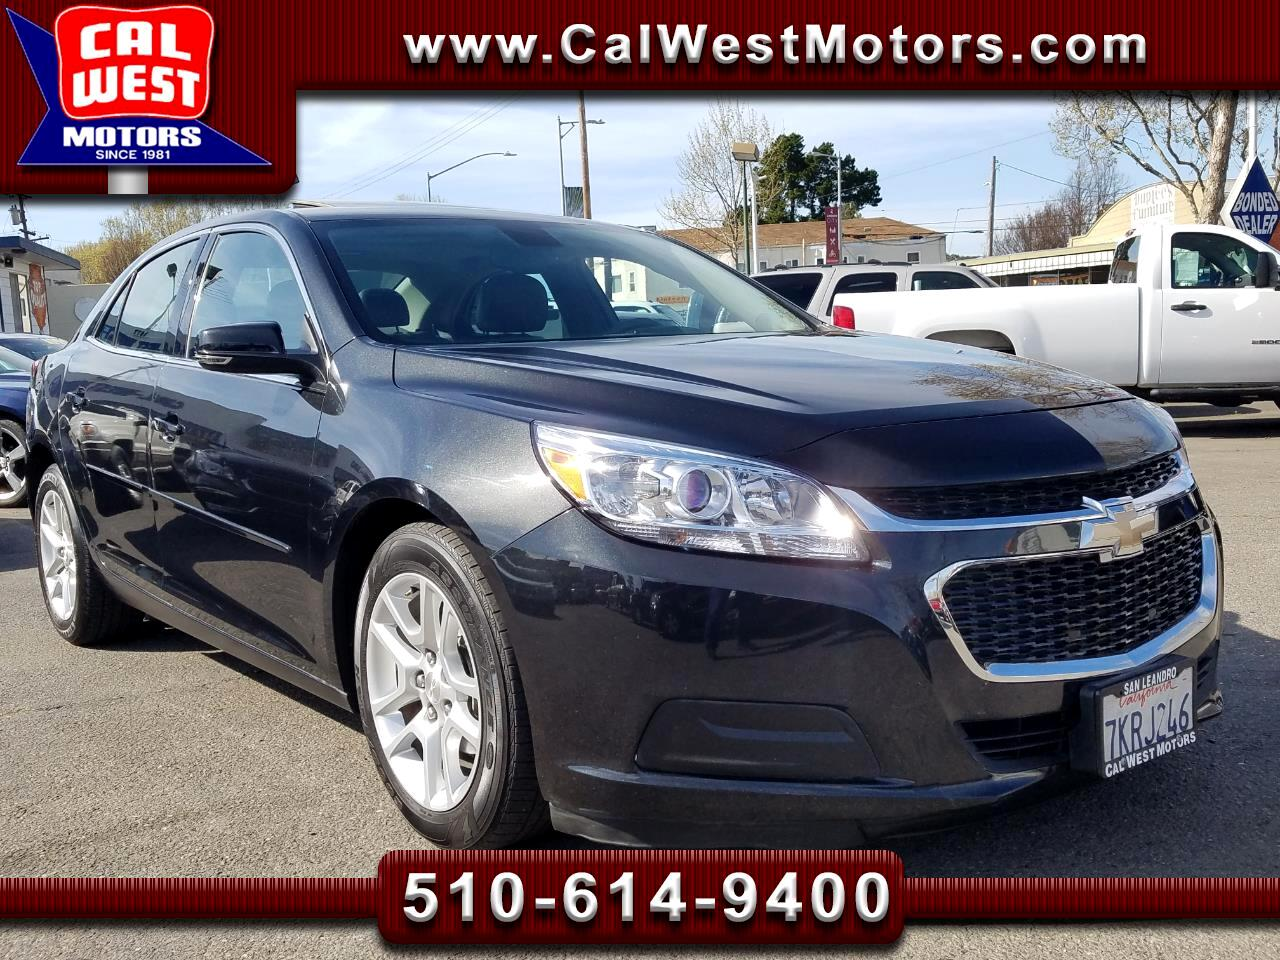 2015 Chevrolet Malibu LT Sedan 1Owner SiriusXM Blu2th ExpertlyMaintained